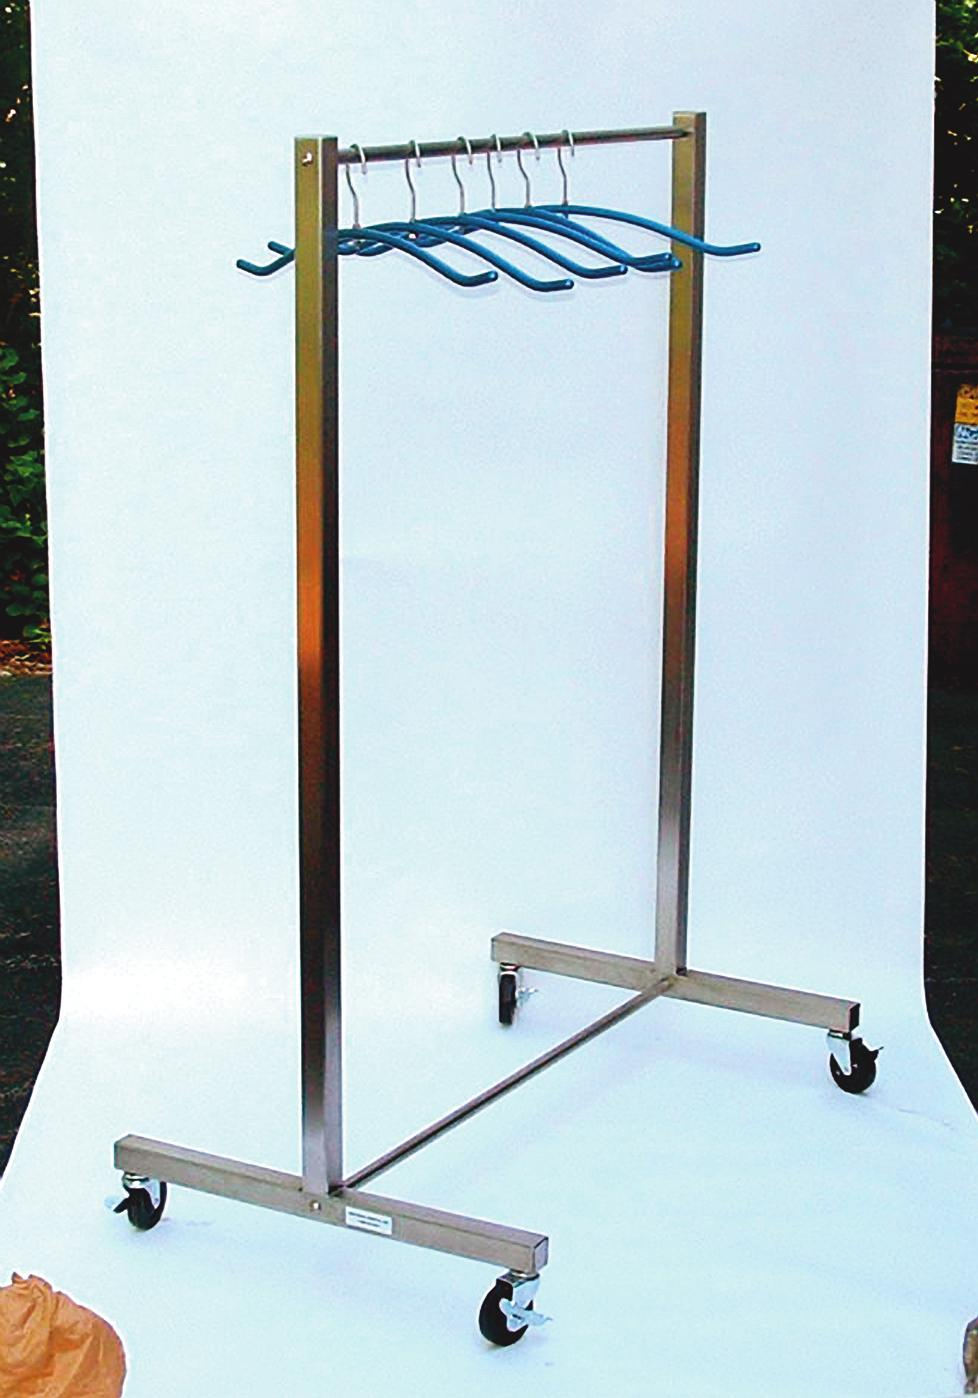 Apron Racks Roll-Away Designed with sturdy casters for easy storage and mobility.